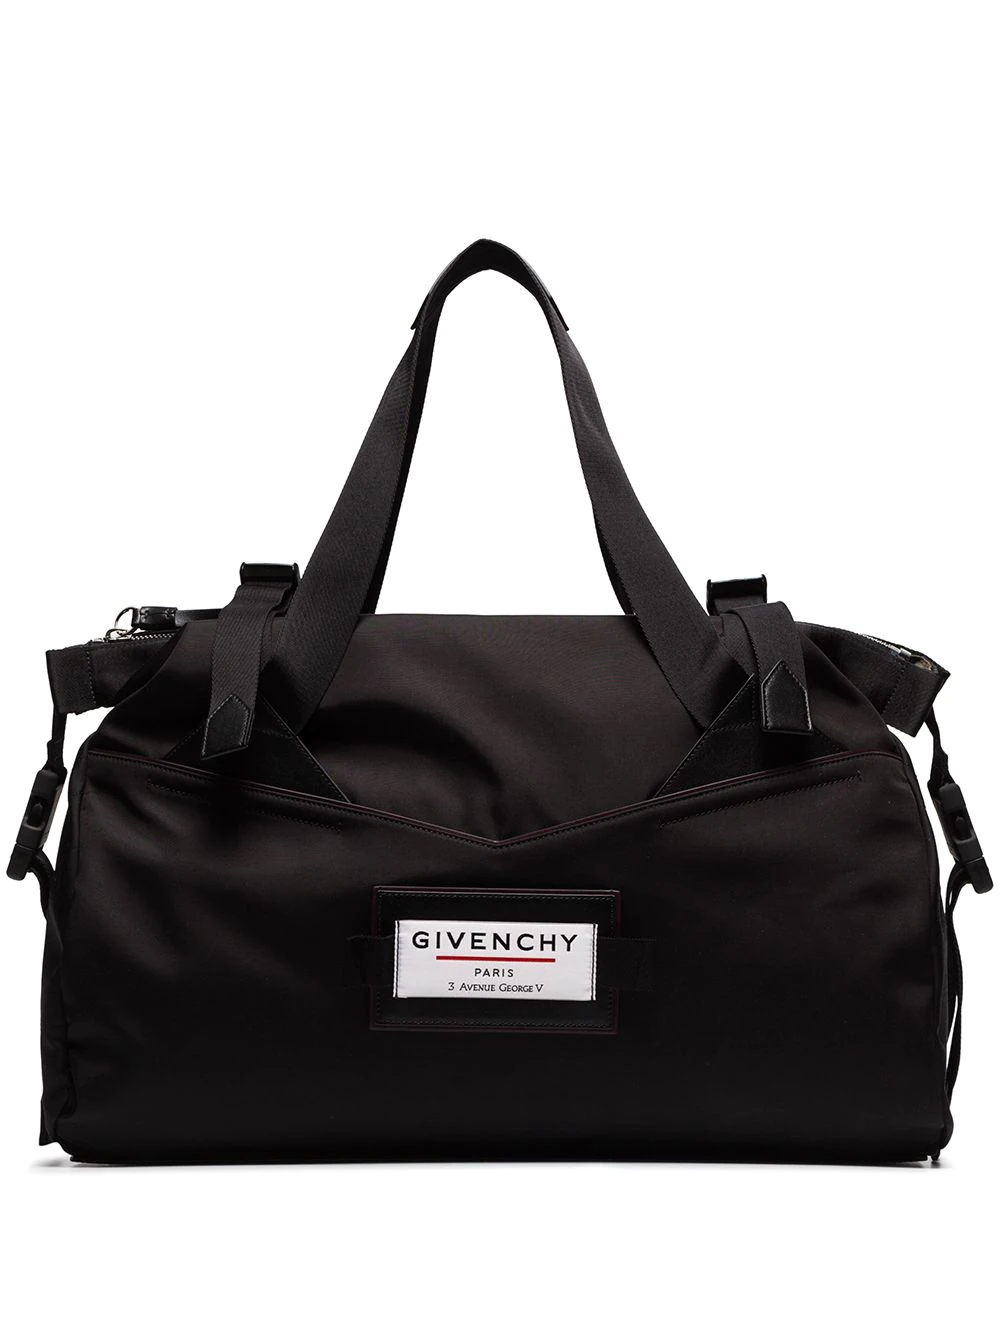 8. Givenchy : Downtown holdall bag